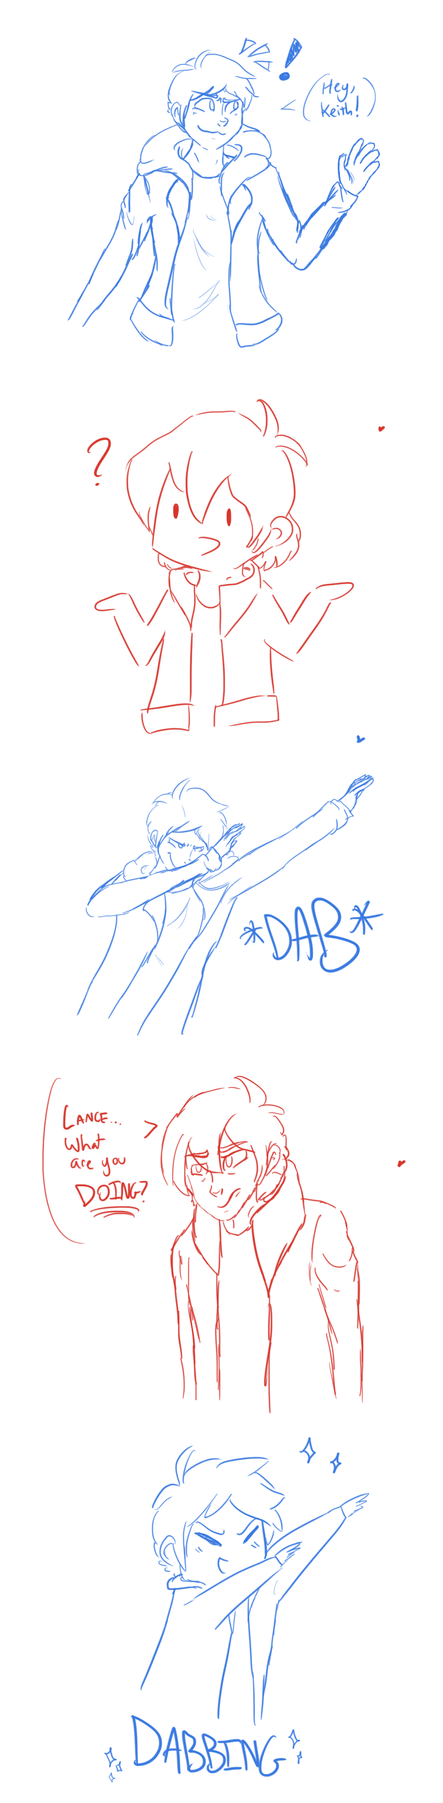 dab by ThatCreativeCat